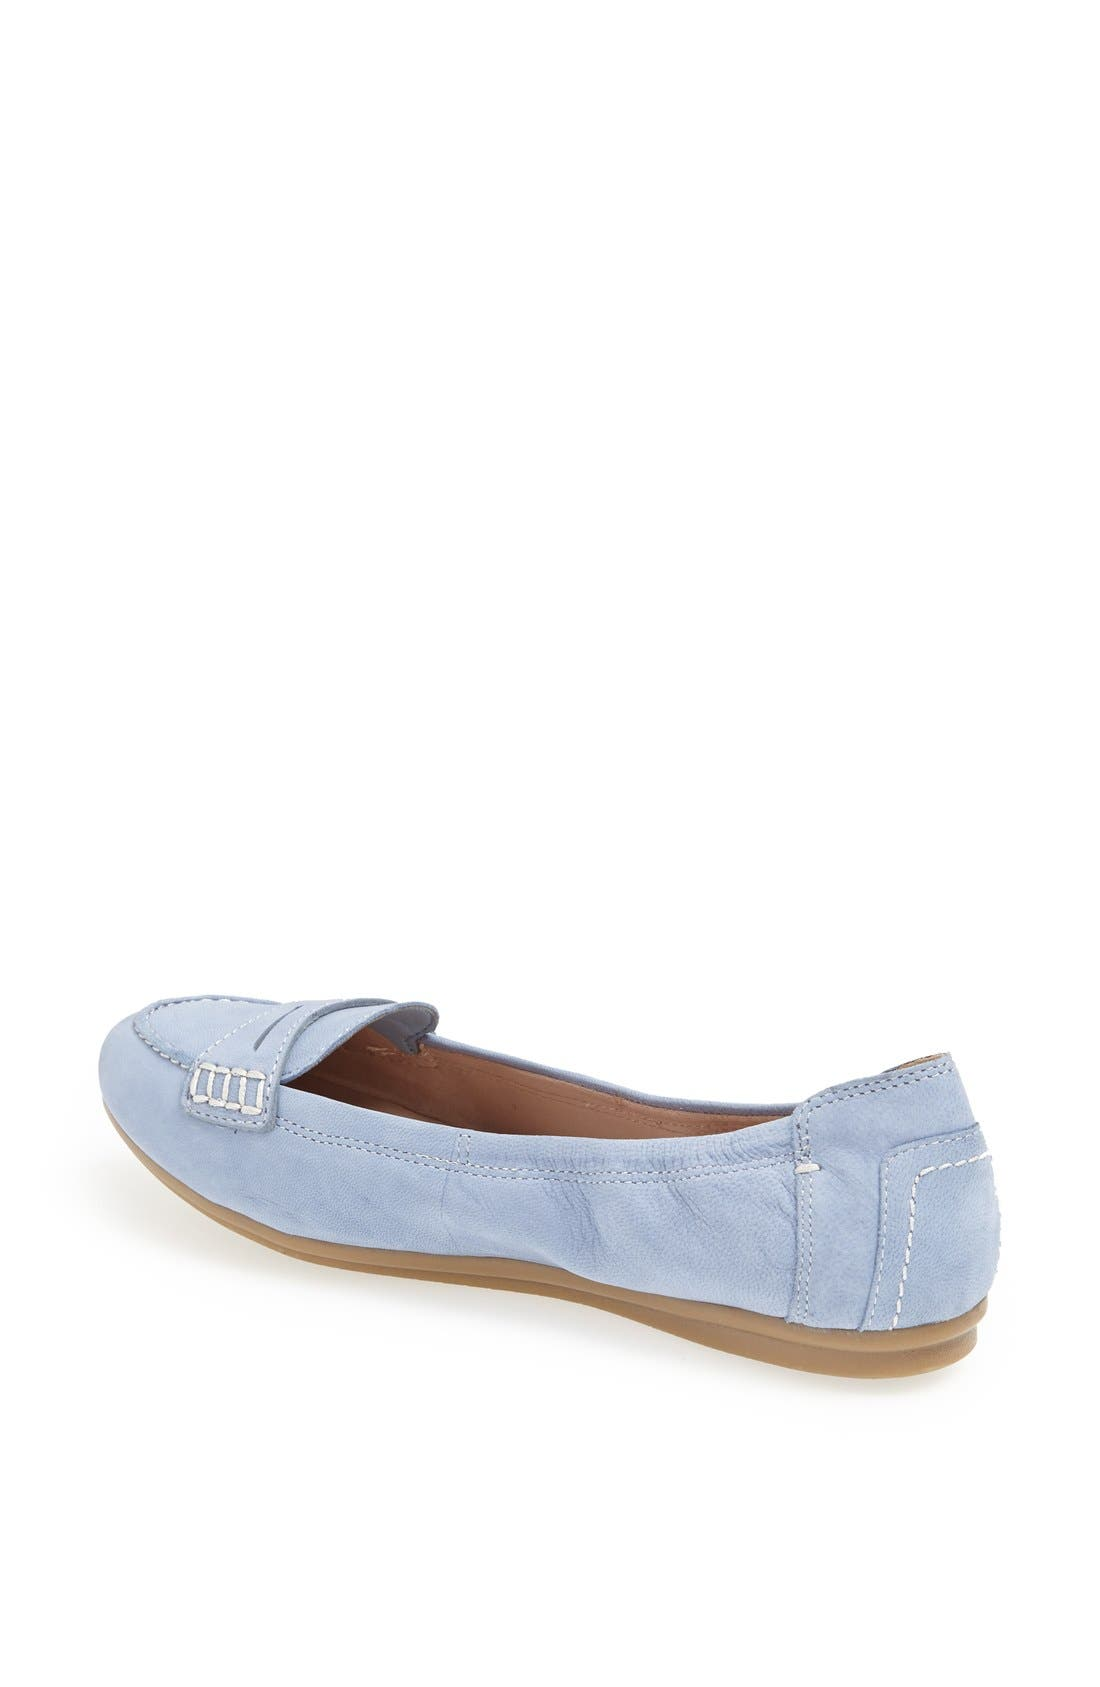 Alternate Image 2  - Easy Spirit 'e360 - Grotto' Leather Penny Loafer (Women)